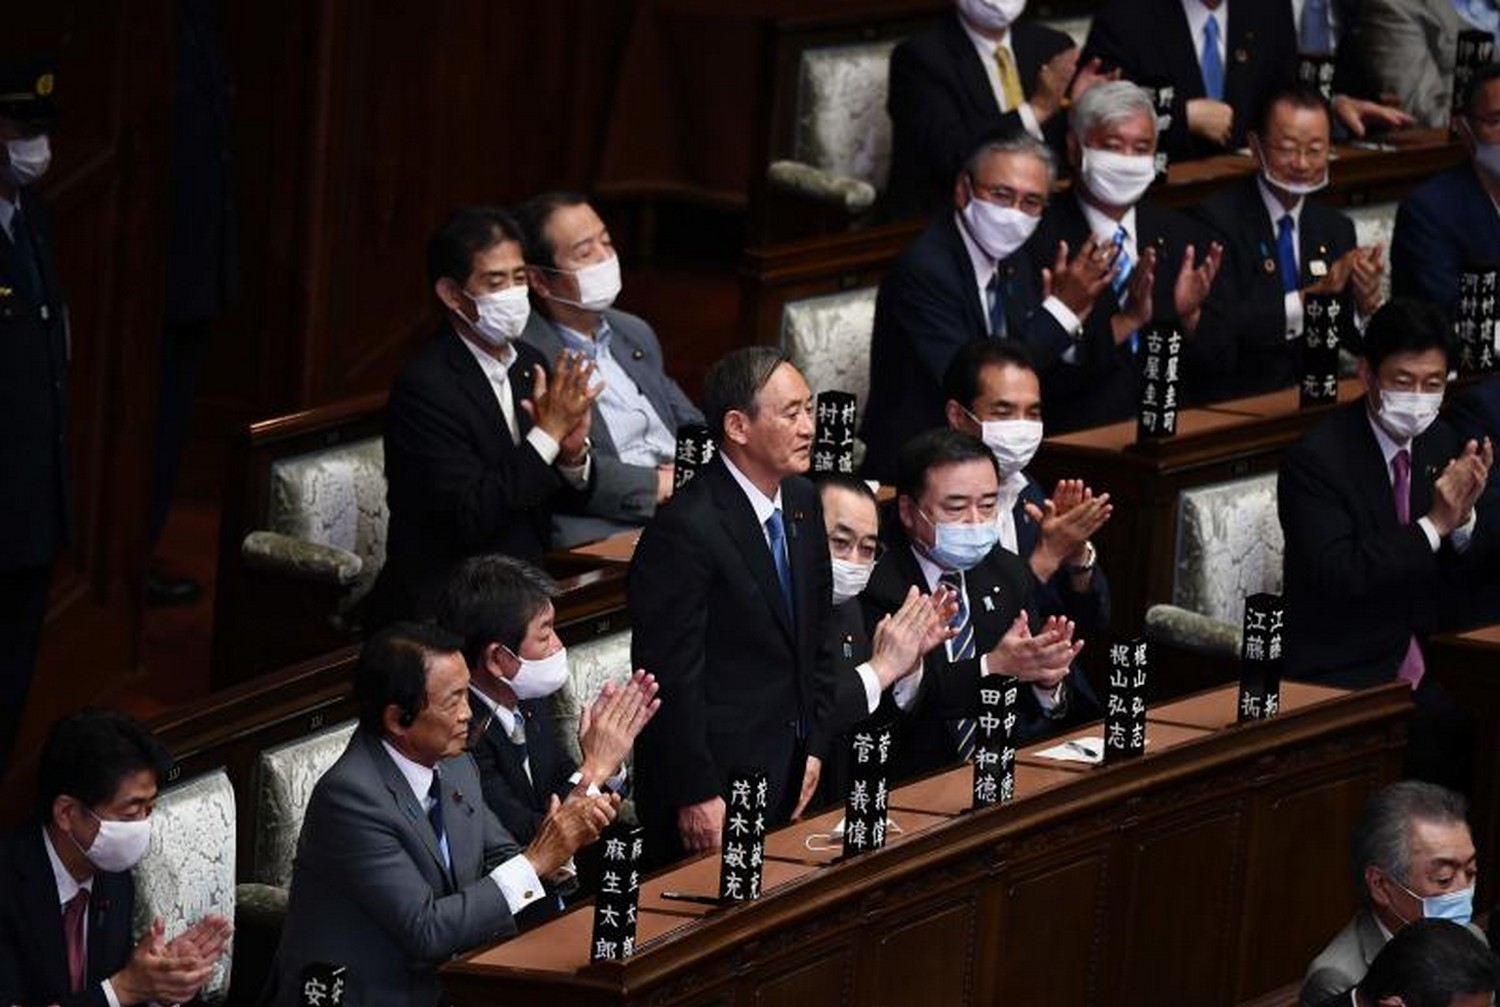 The new leader of Japan's Liberal Democratic Party, Yoshihide Suga (standing), is applauded by outgoing prime minister Shinzo Abe(left) and other government officials after he was elected prime minister by the Lower House of parliament in Tokyo on Wednesday.(Photo: AFP)